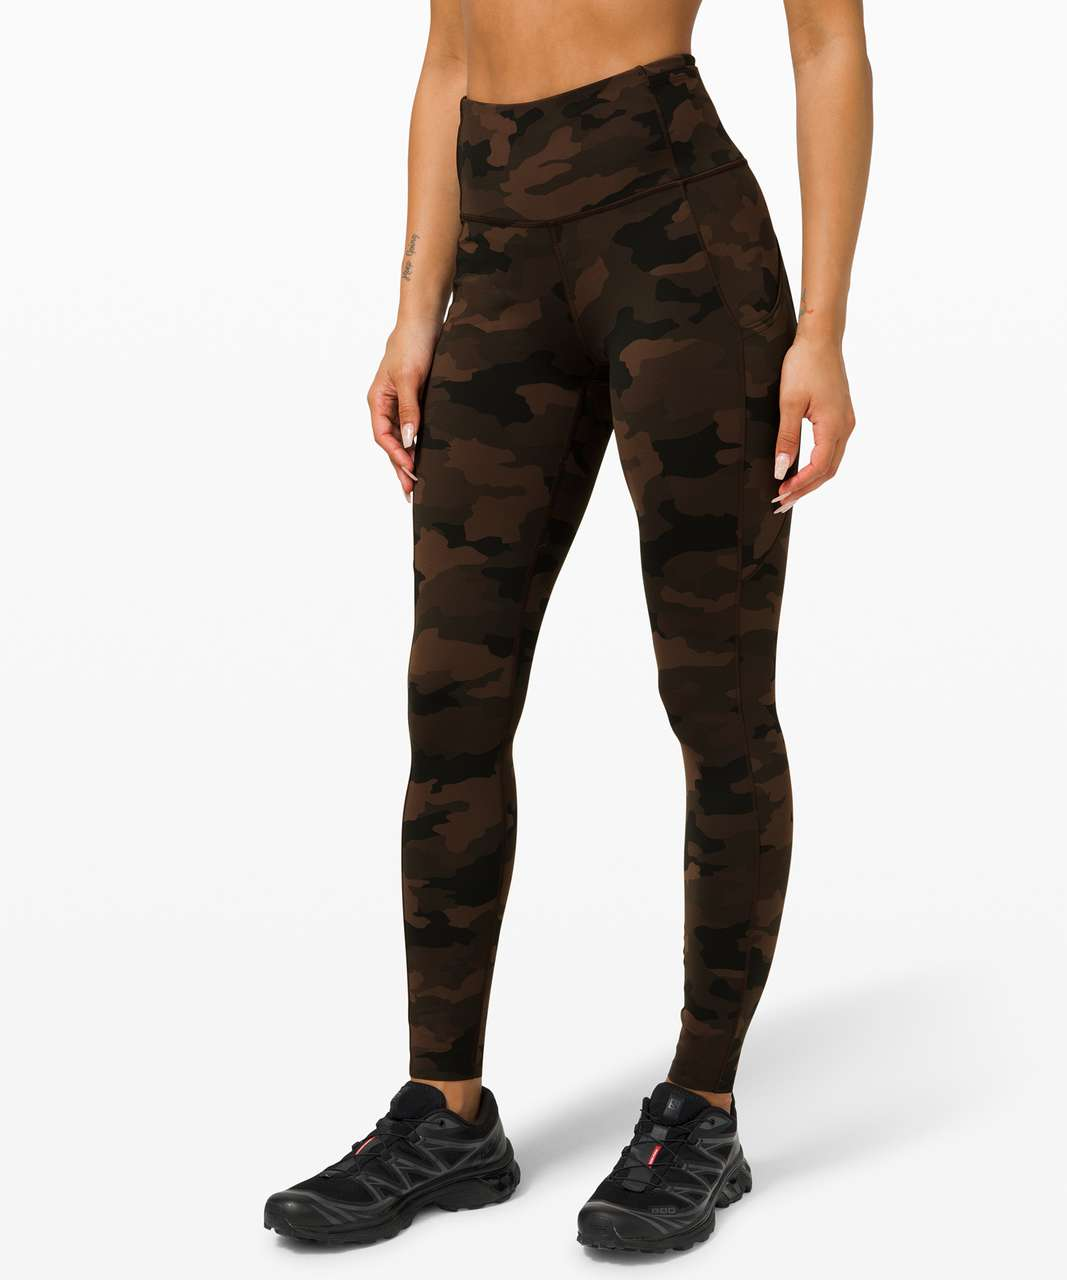 """Lululemon Fast and Free High-Rise Tight 28"""" *Non-Reflective Brushed Nulux - Heritage 365 Camo Brown Earth Multi"""